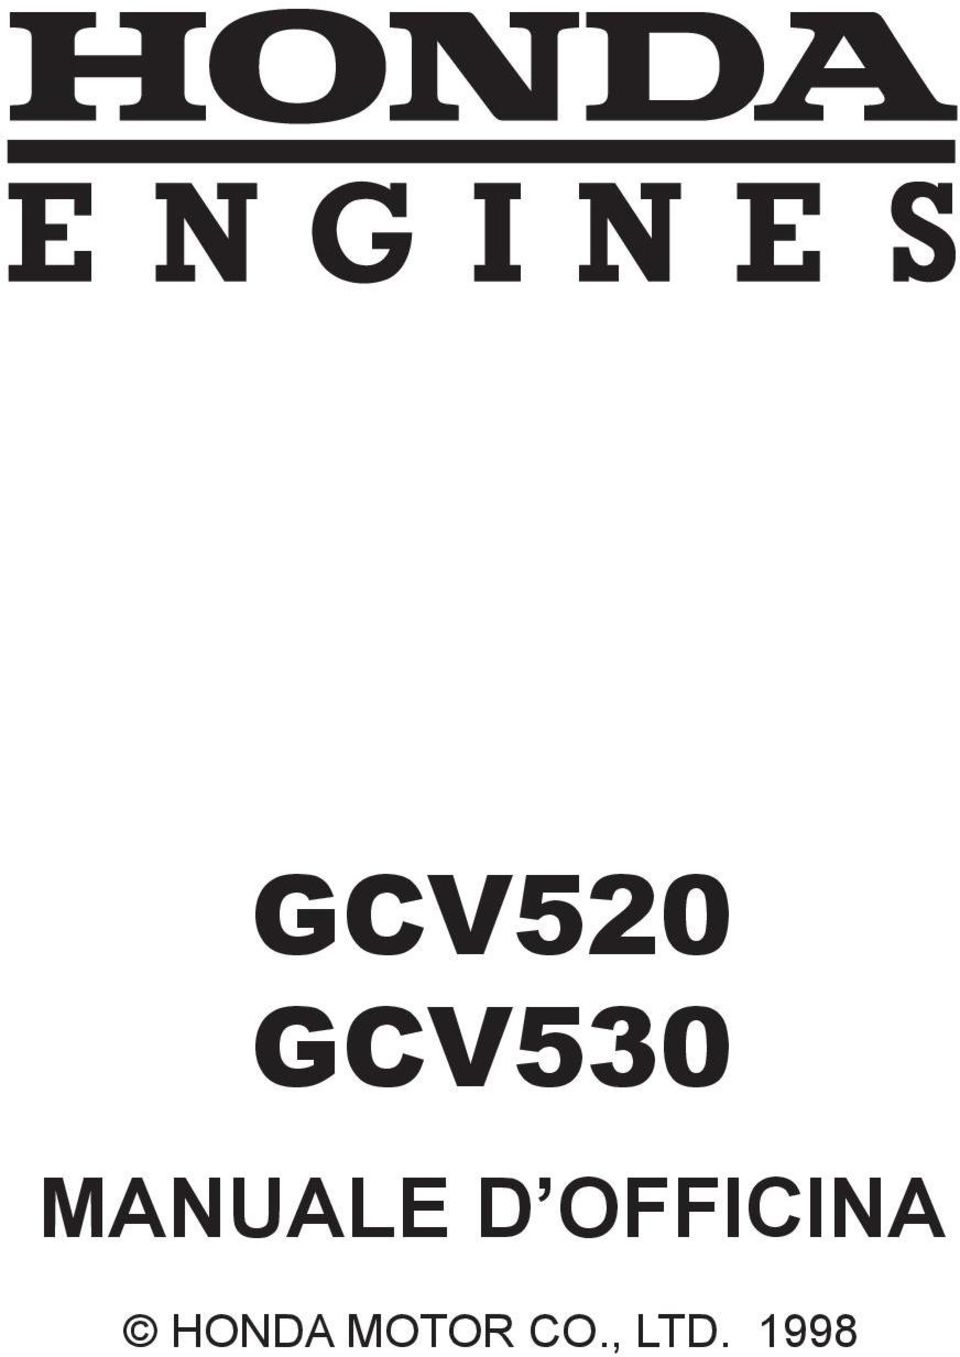 11:38 AM SUPPLEMENT GCV520 MANUALE D